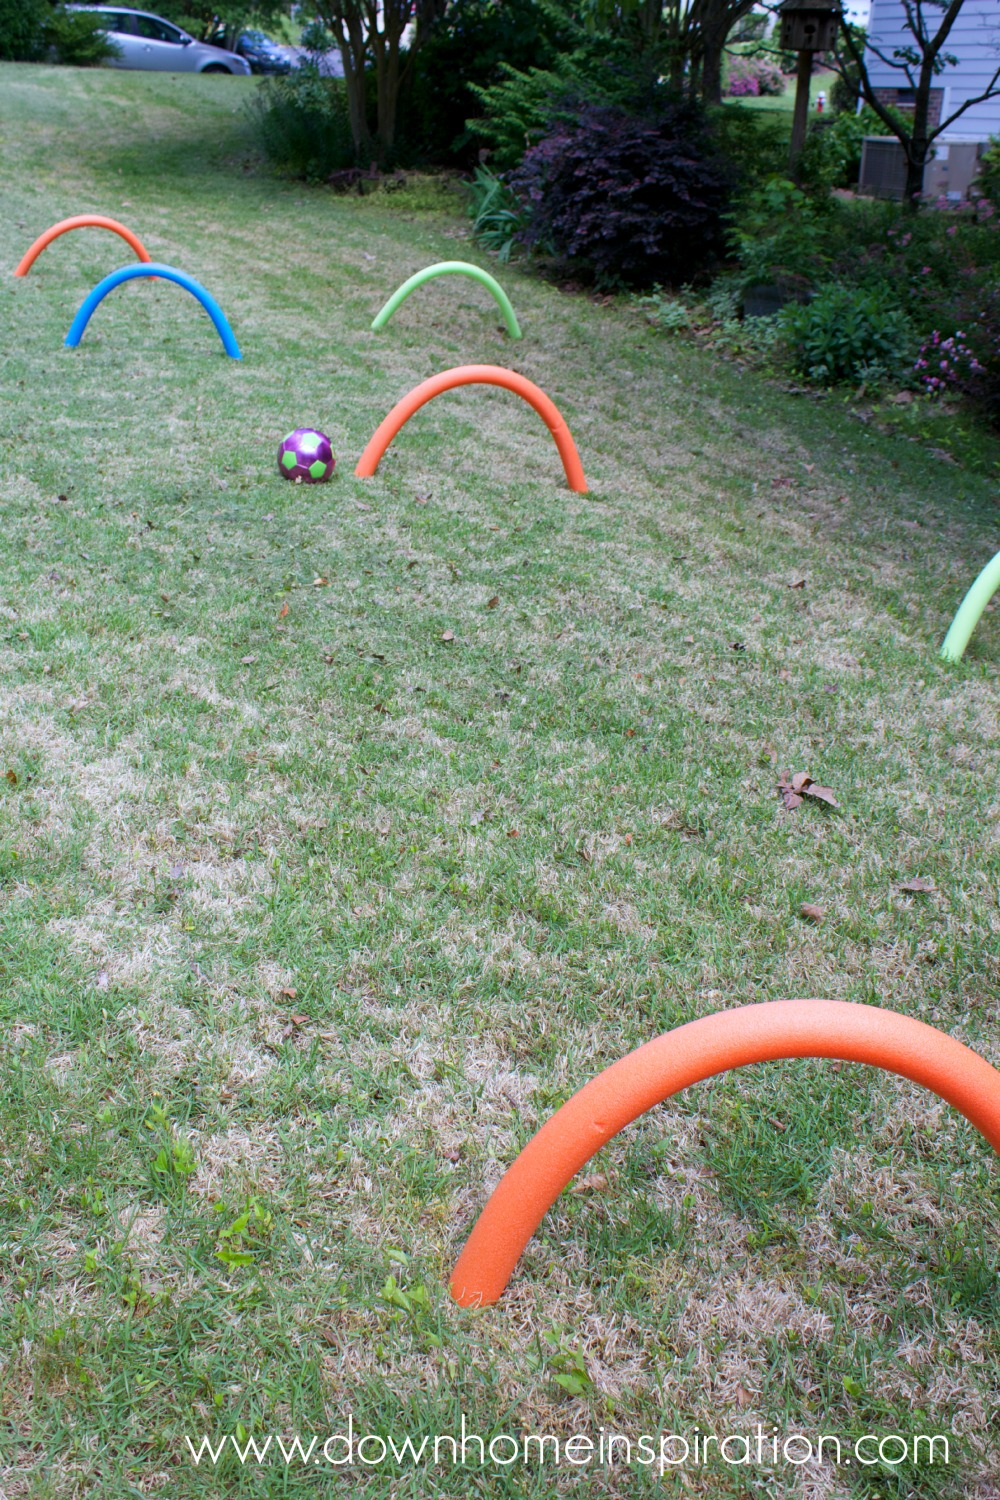 pool-noodle-croquet-3